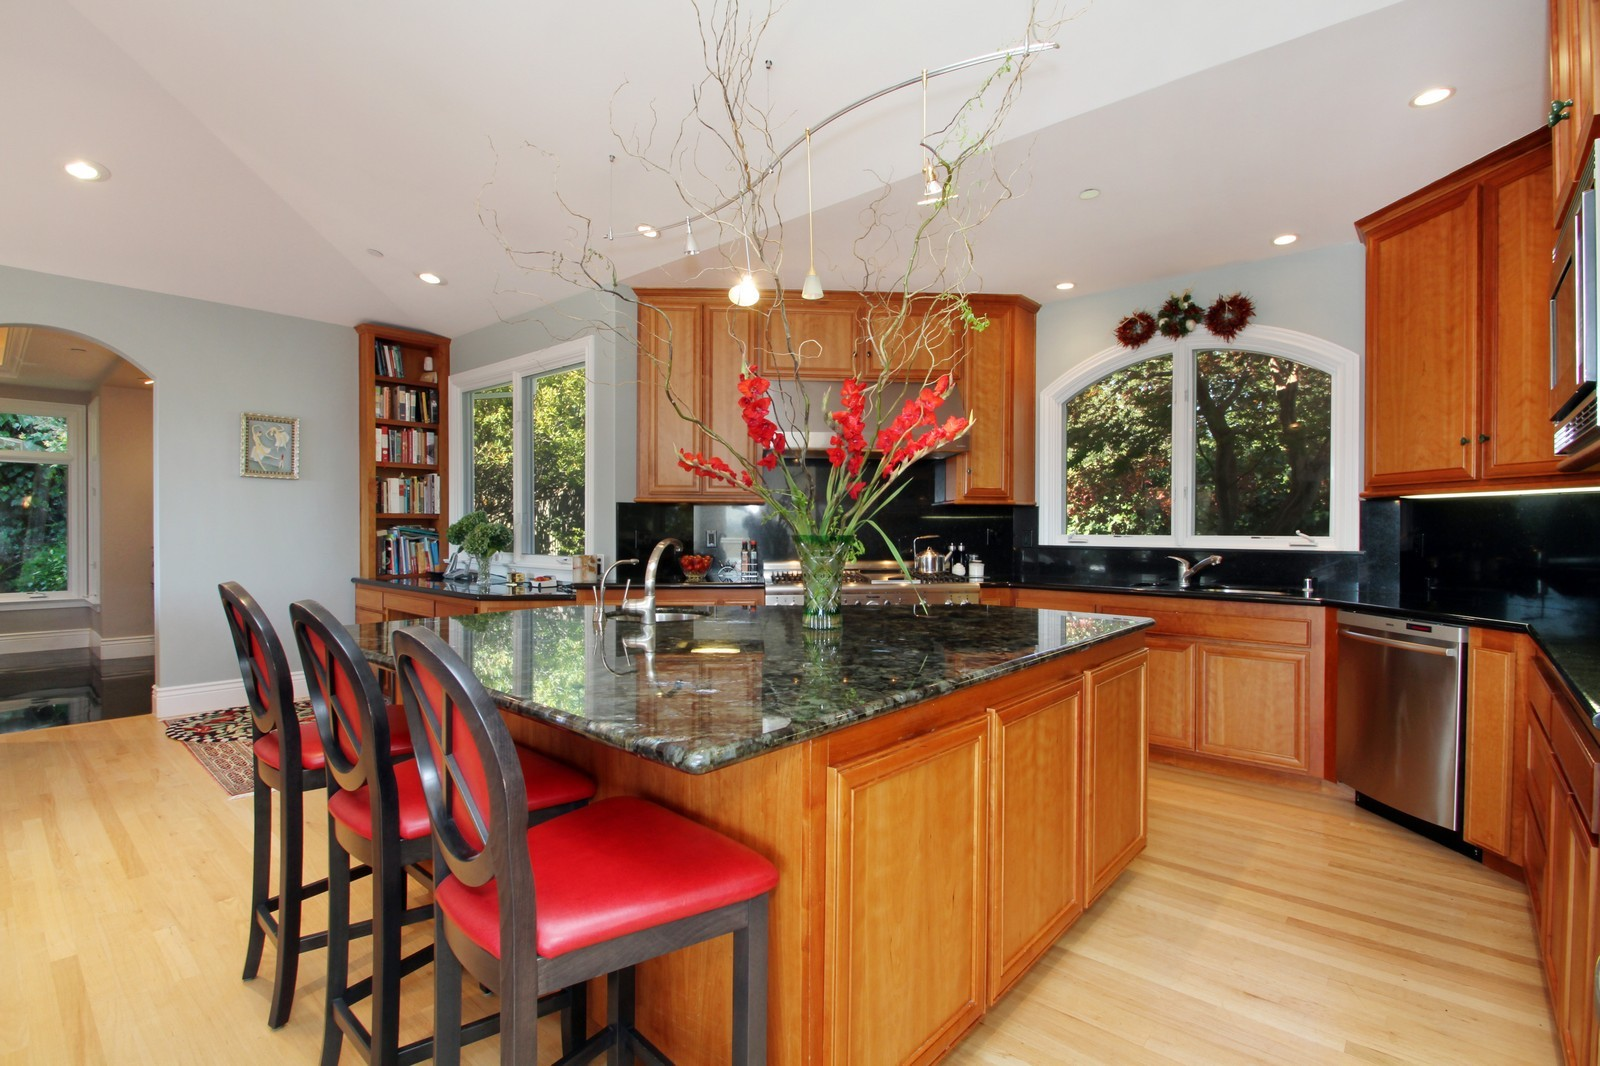 Real Estate Photography - 73 Upper Toyon Drive, Kentfield, CA, 94904 - Kitchen